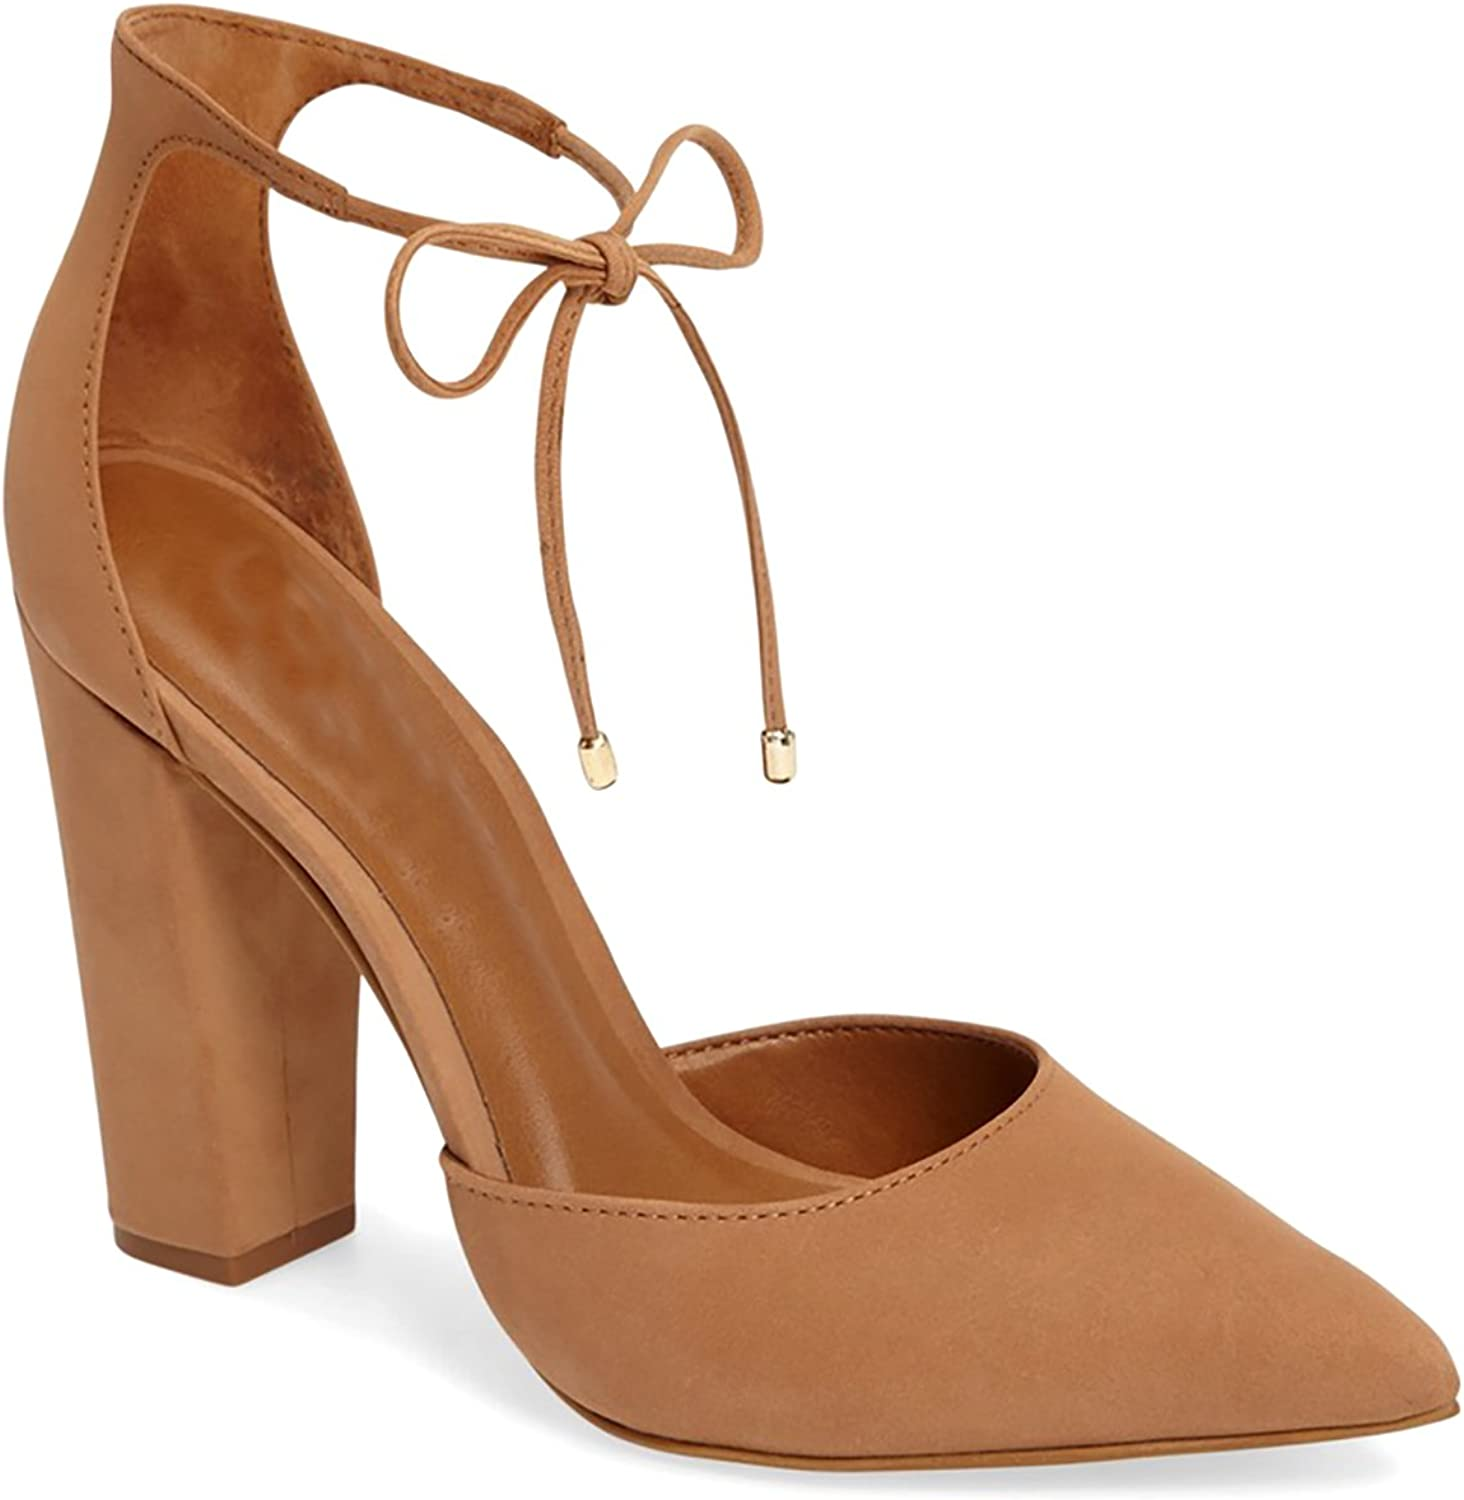 LUSTHAVE Women's Raina D'Orsay Lace Up Tie Up Chunky Wraped Block High Heel Dress Pump